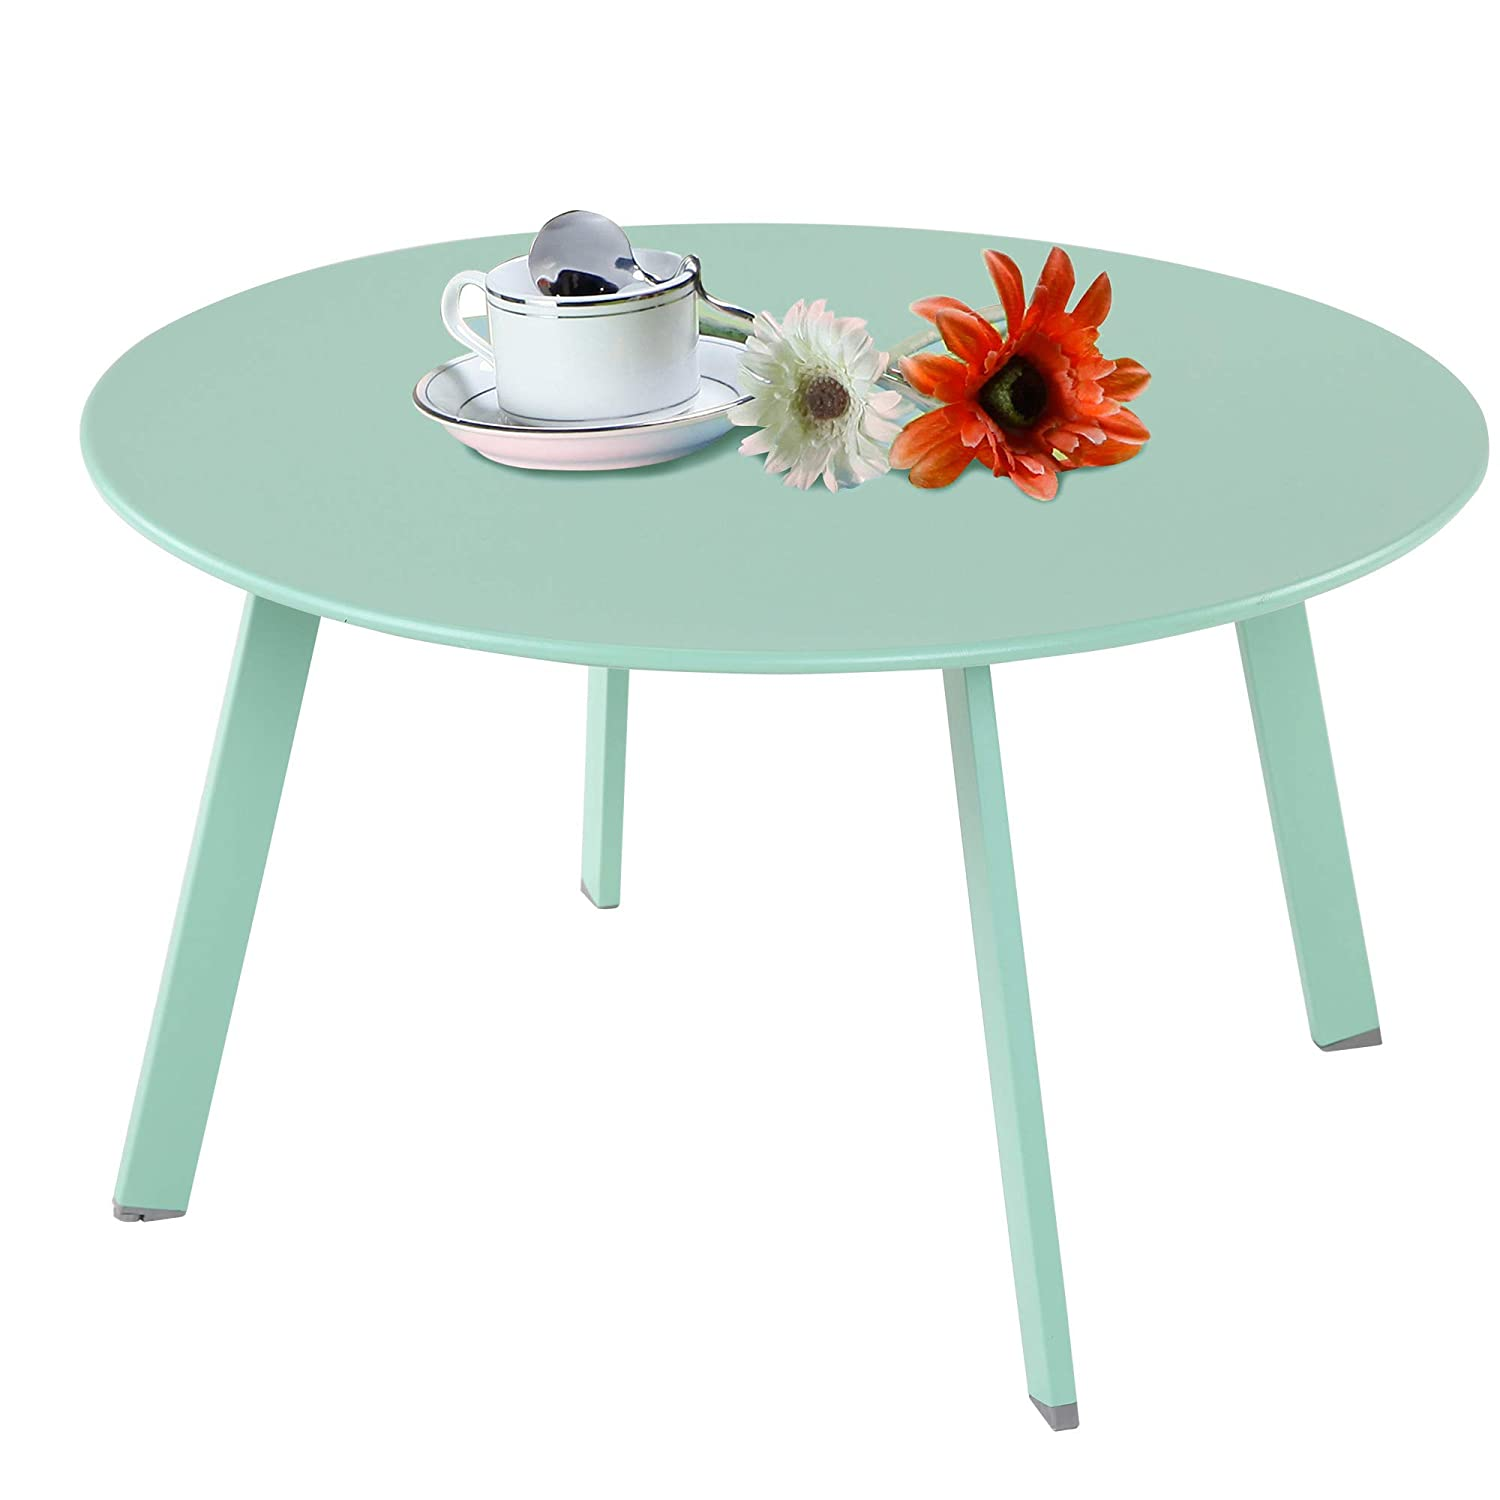 Grand patio Steel Patio Coffee Table, Weather Resistant Outdoor Side Table, Large Sized Round End Tables, Mint Green